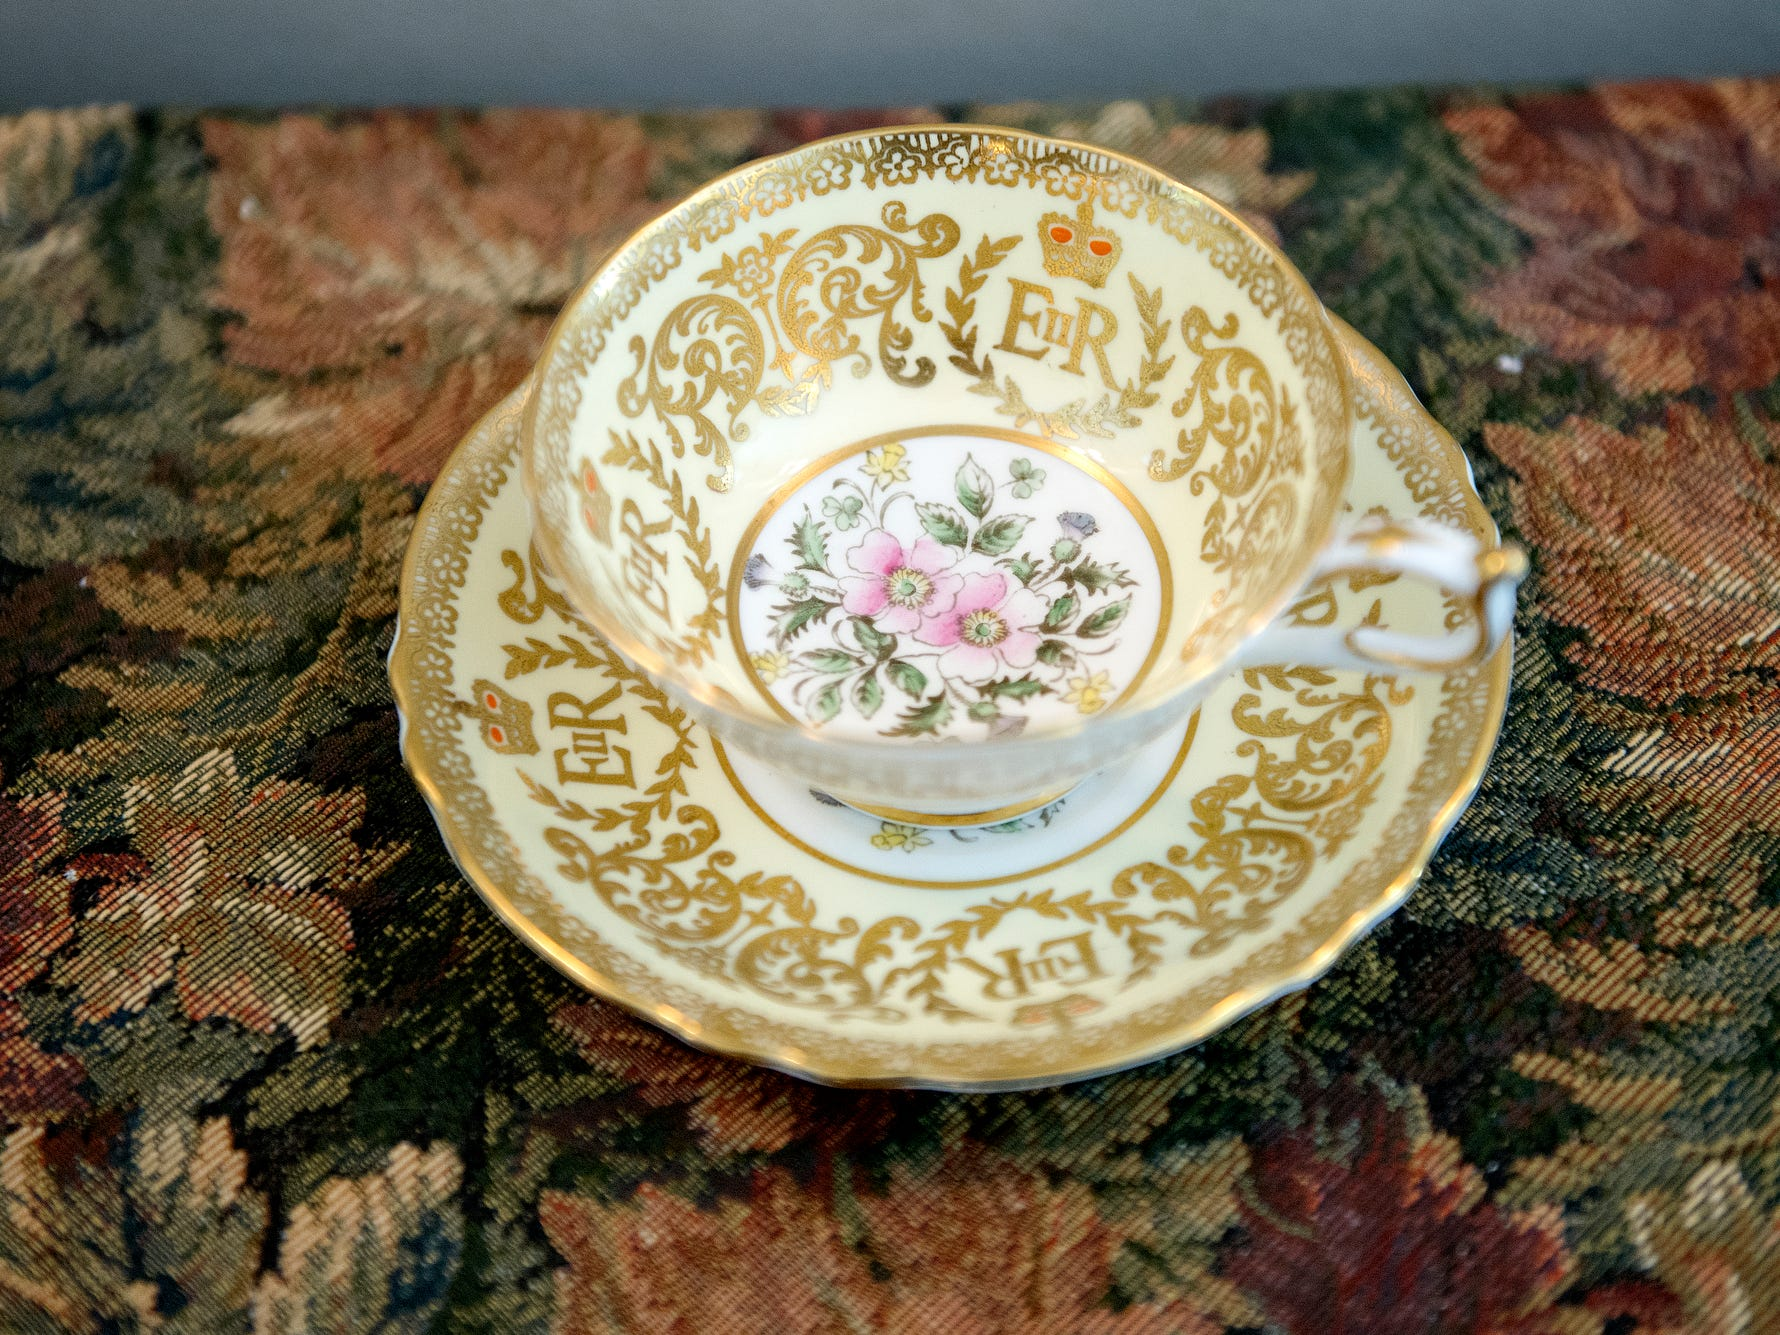 A Paragon tea cup and saucer set that commemorates Queen Elizabeth II's coronation is displayed inside the Windsor suite at the English Inn on Tuesday, Aug. 28, 2018, in Eaton Rapids. The 17-room mansion was once the home of Oldsmobile president Irving Reuter and his wife, Janet.